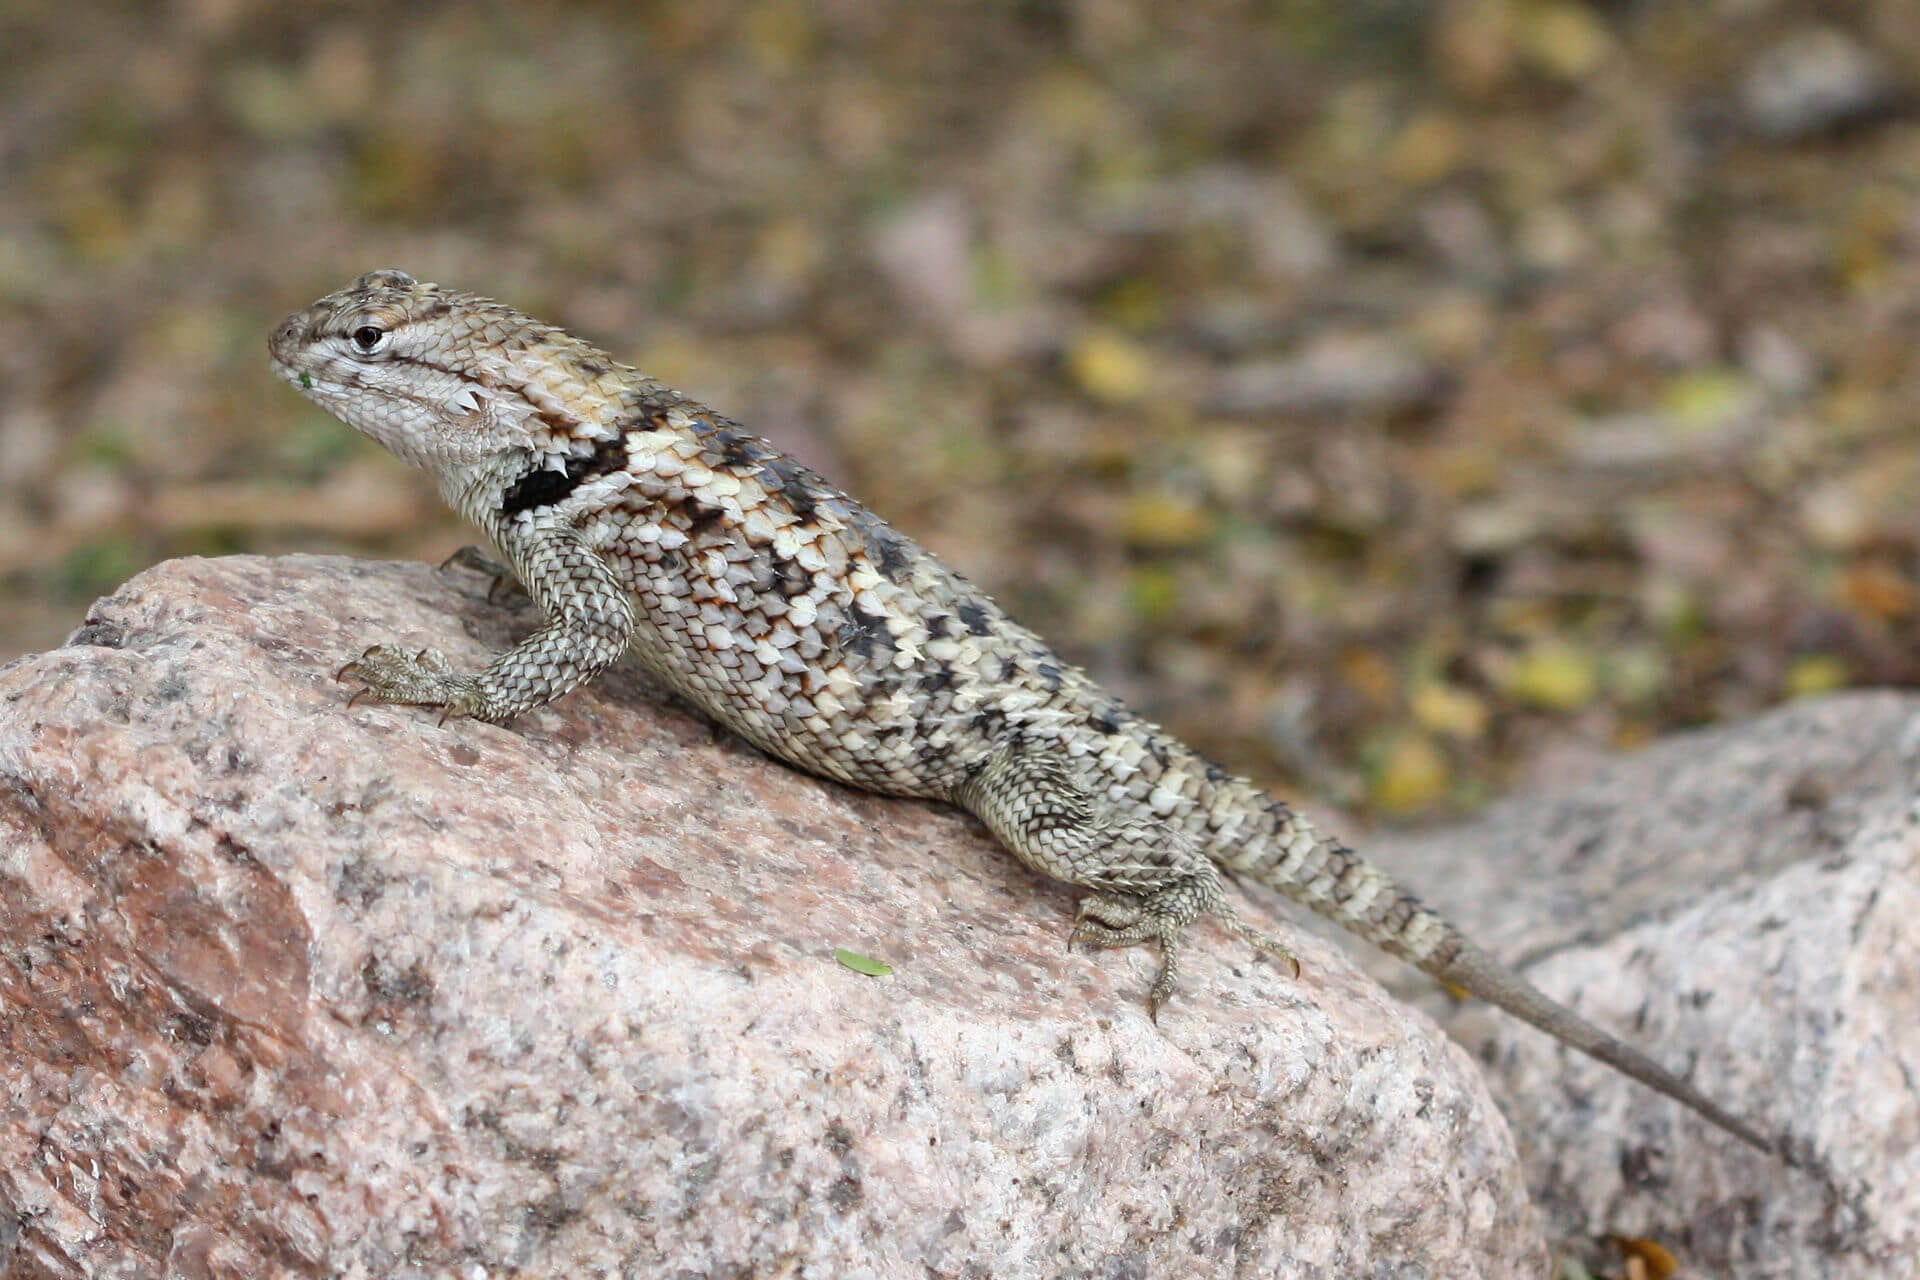 https://en.wikipedia.org/wiki/Sceloporus_magister#/media/File:Sceloporus_magister_Phoenix.jpg